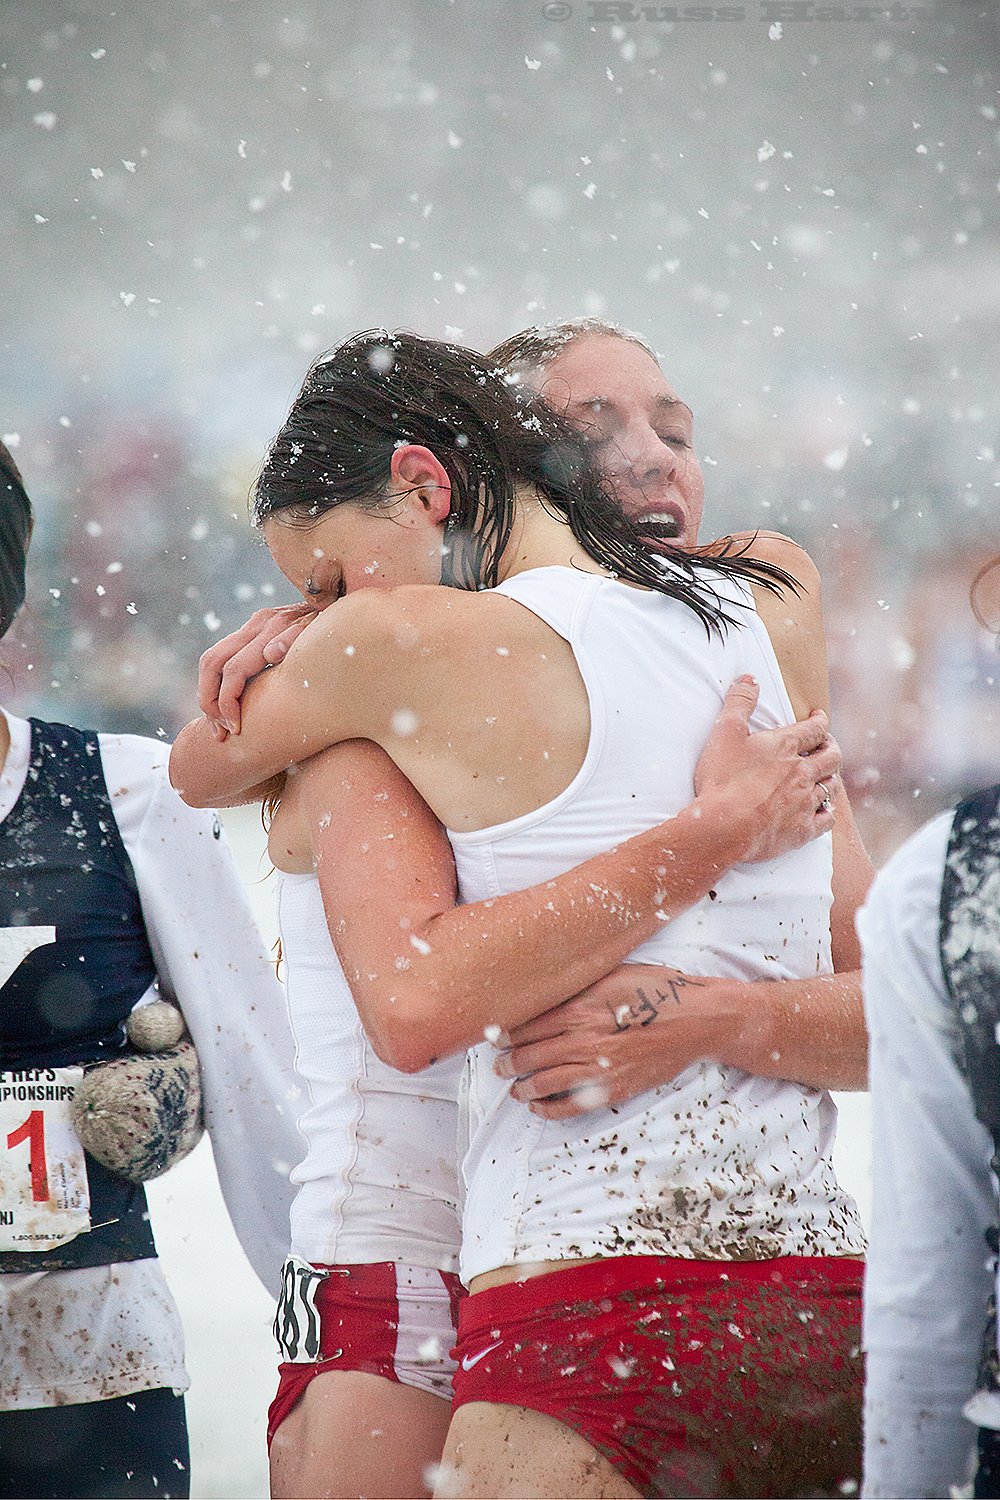 Warriors' embrace after a valiant and winning effort (in a freak October snowstorm) at the 2011 Heptagonal Cross-Country Championsips in Princeton.